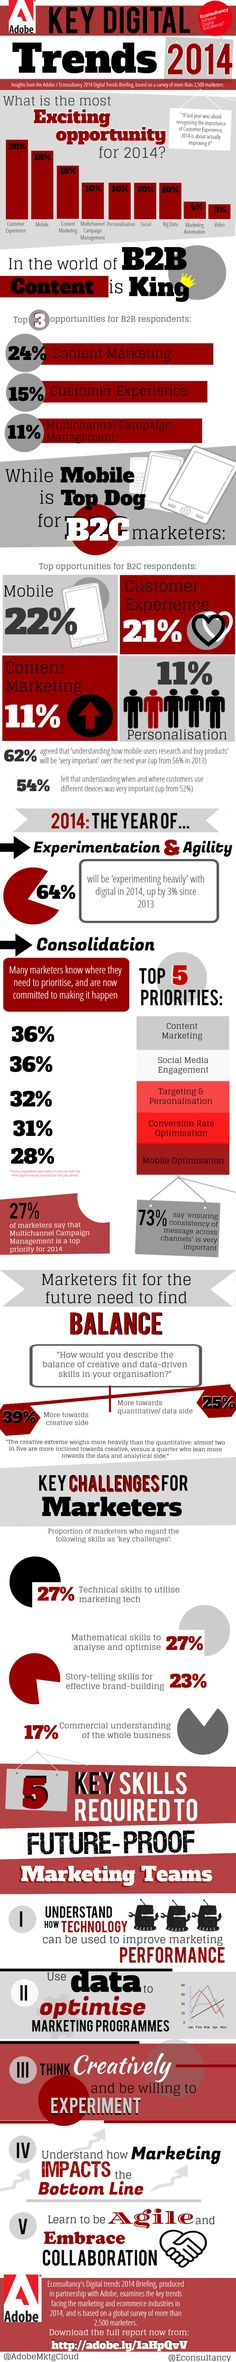 Customer Experience and Content Marketing Top 2014 Digital Trends - Digital Europe